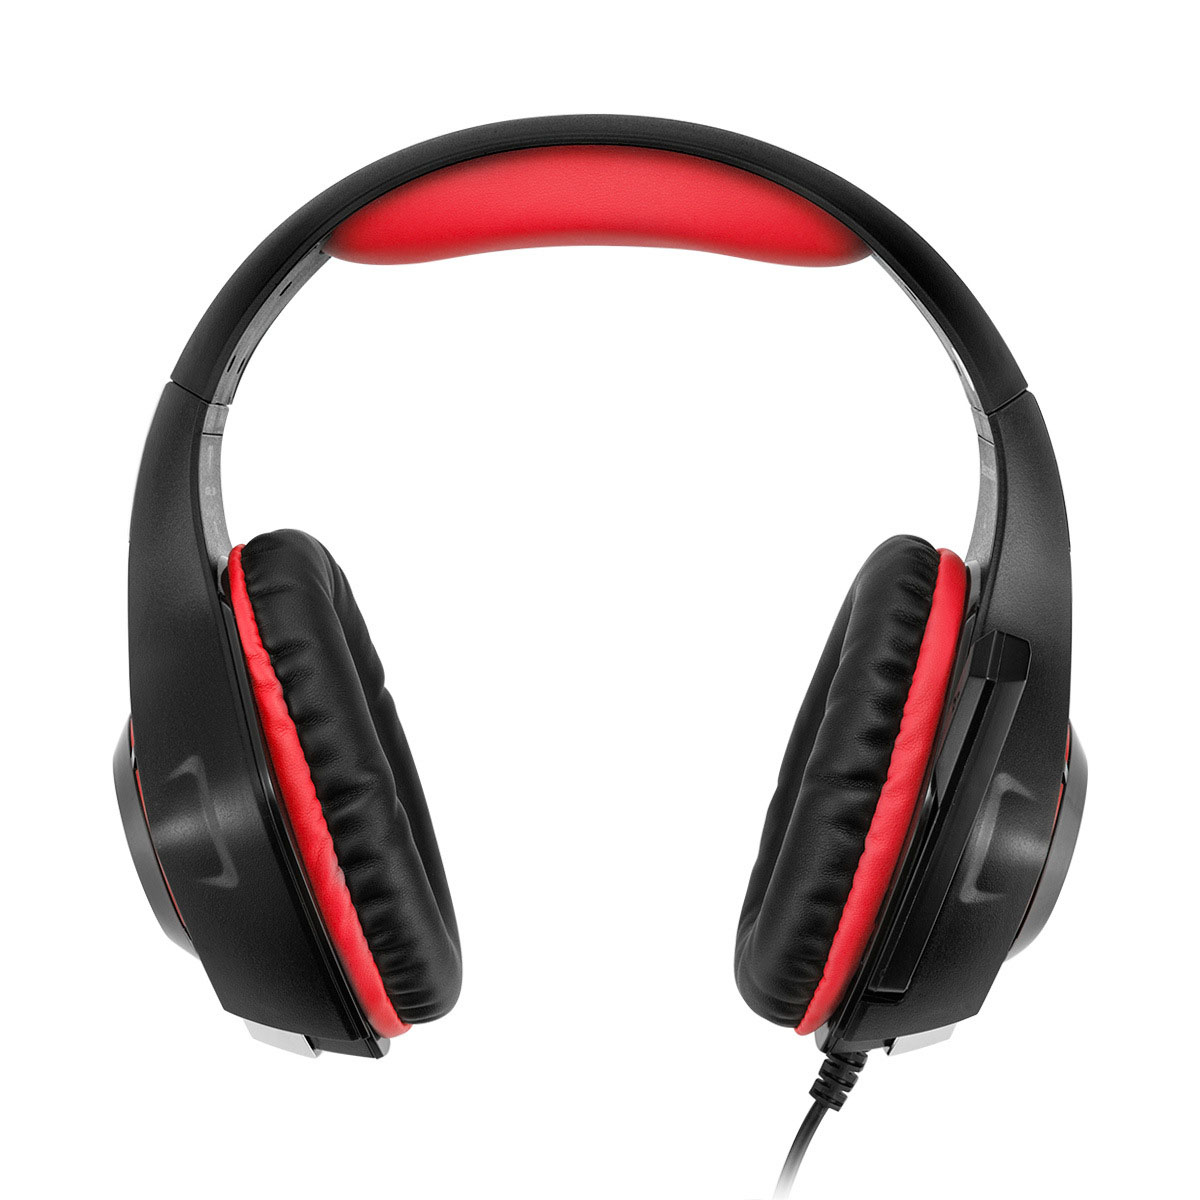 Professional Gaming Headset With Mic Wireless Adjustable Headphones Microphone Cable Control for XBOX One PS4